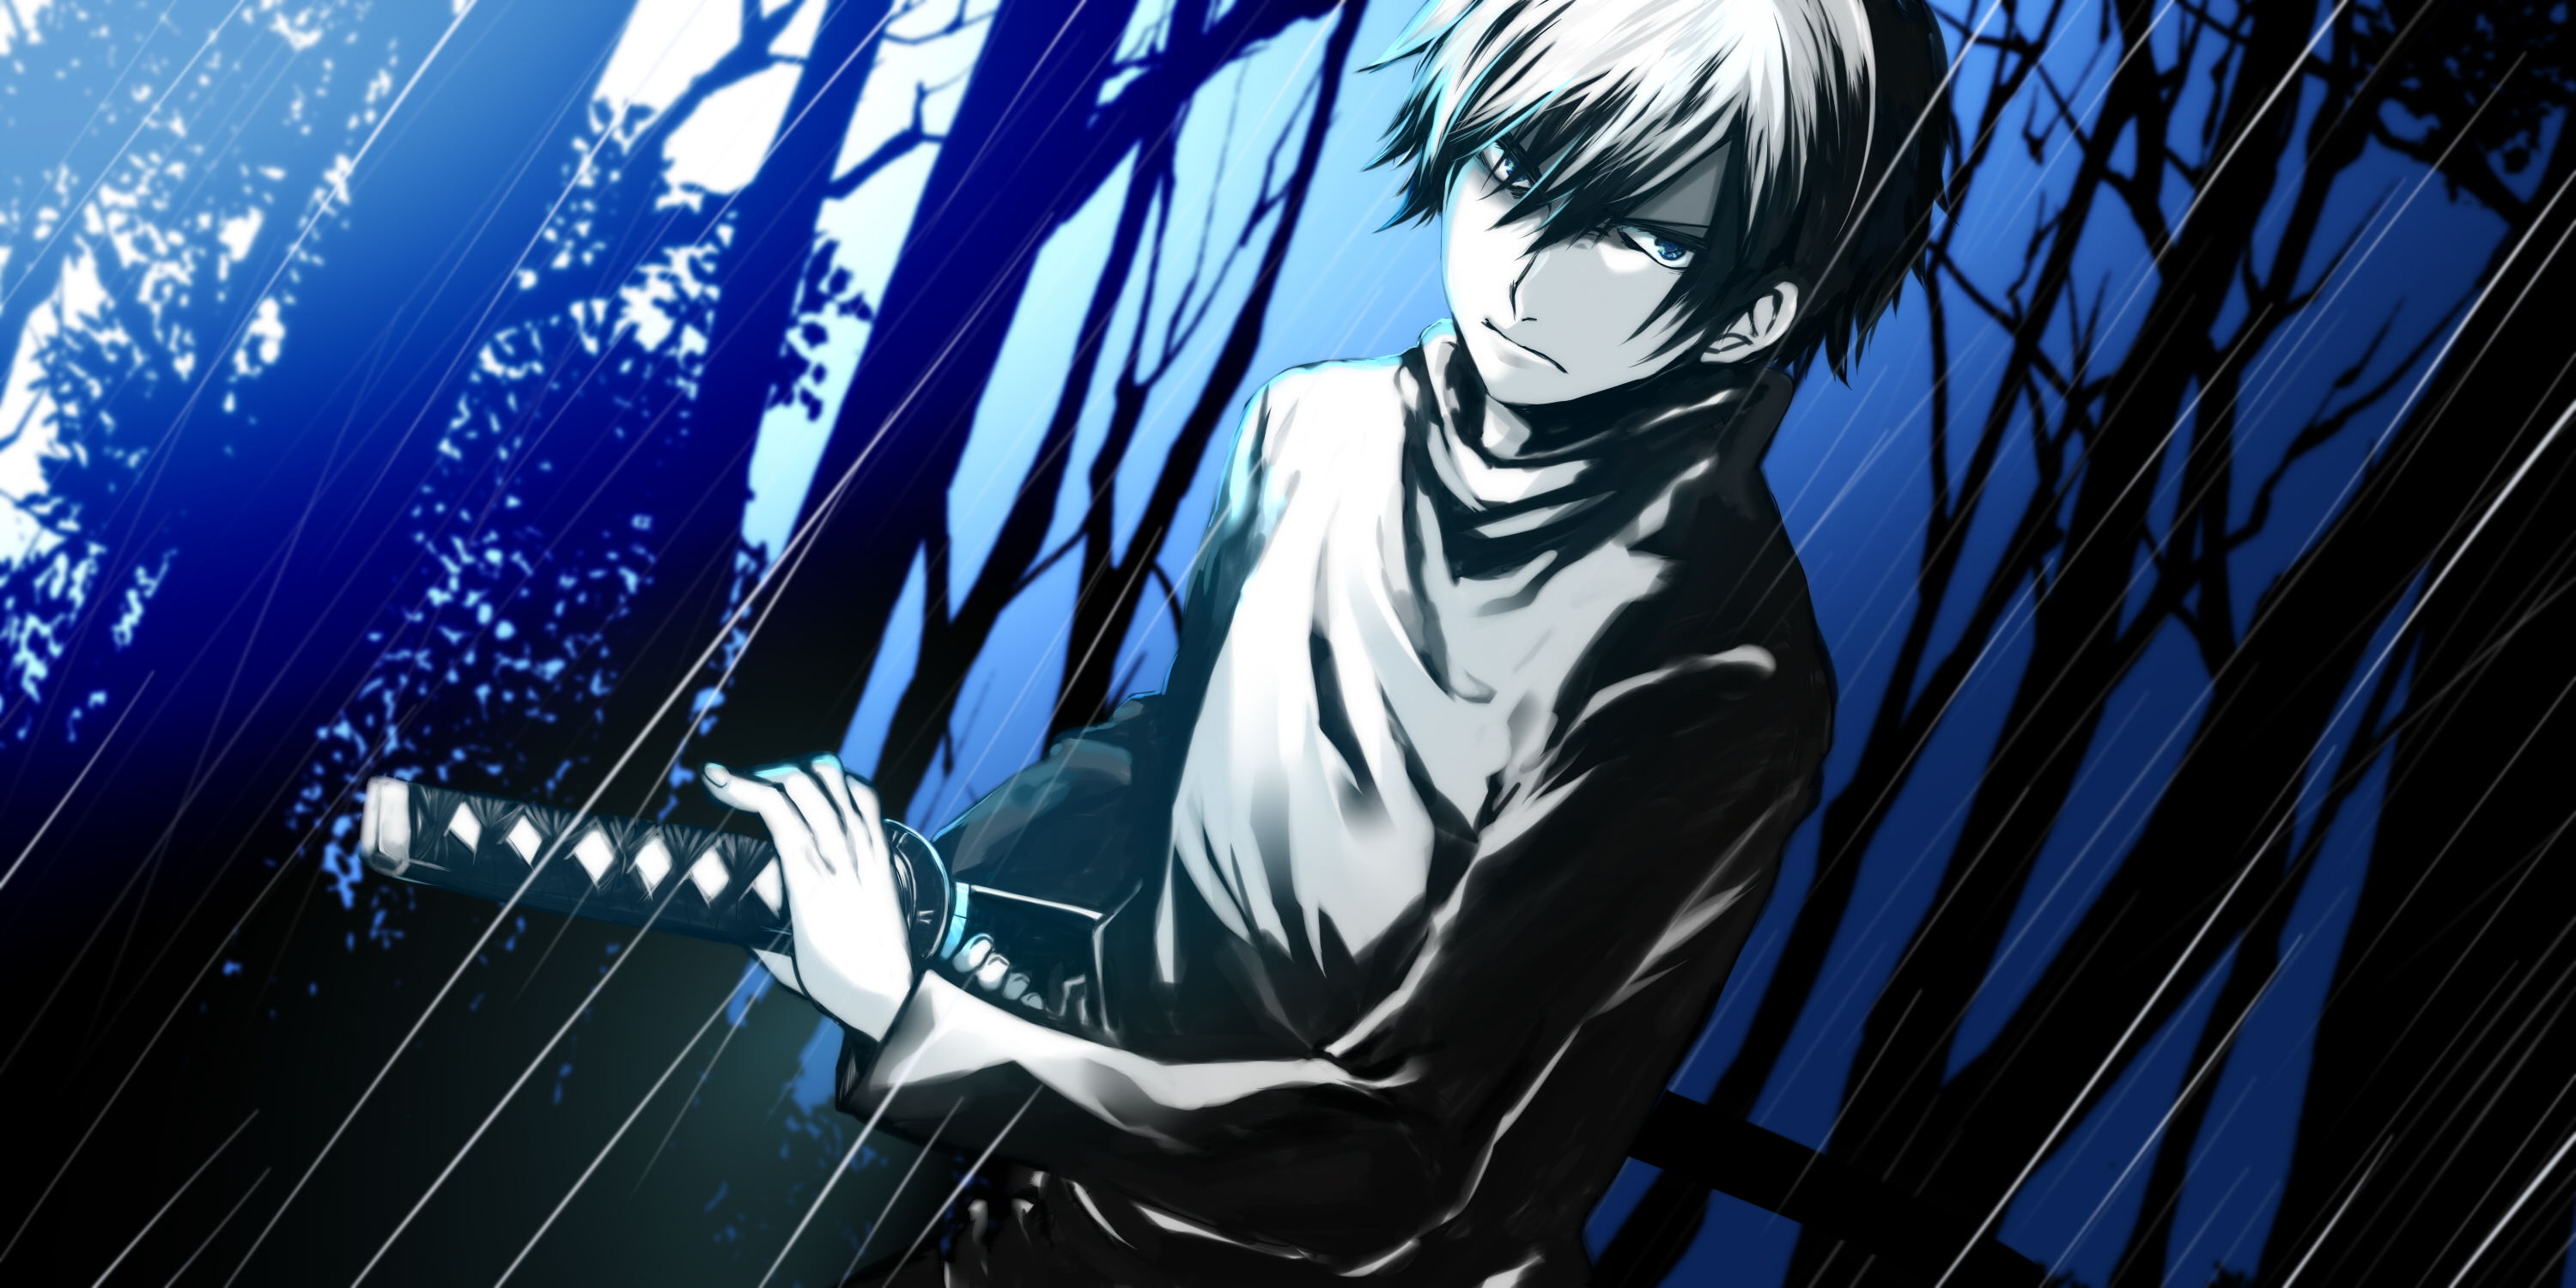 Image Result For Anime Boy Wallpaper Download